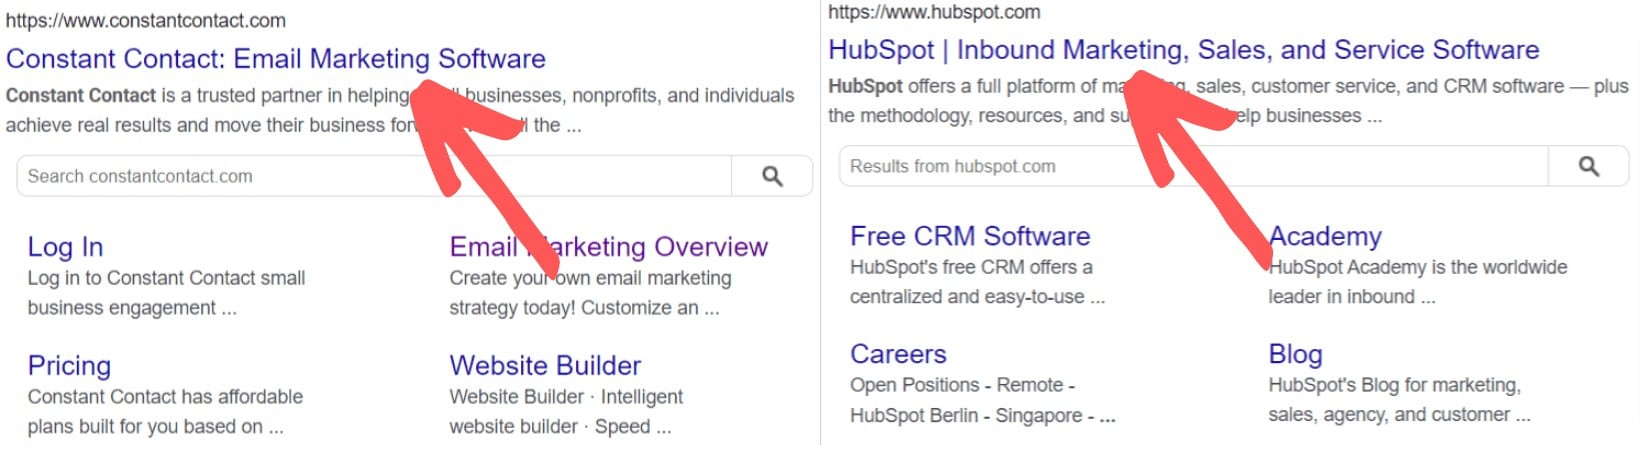 hubspot and constant contact google search results